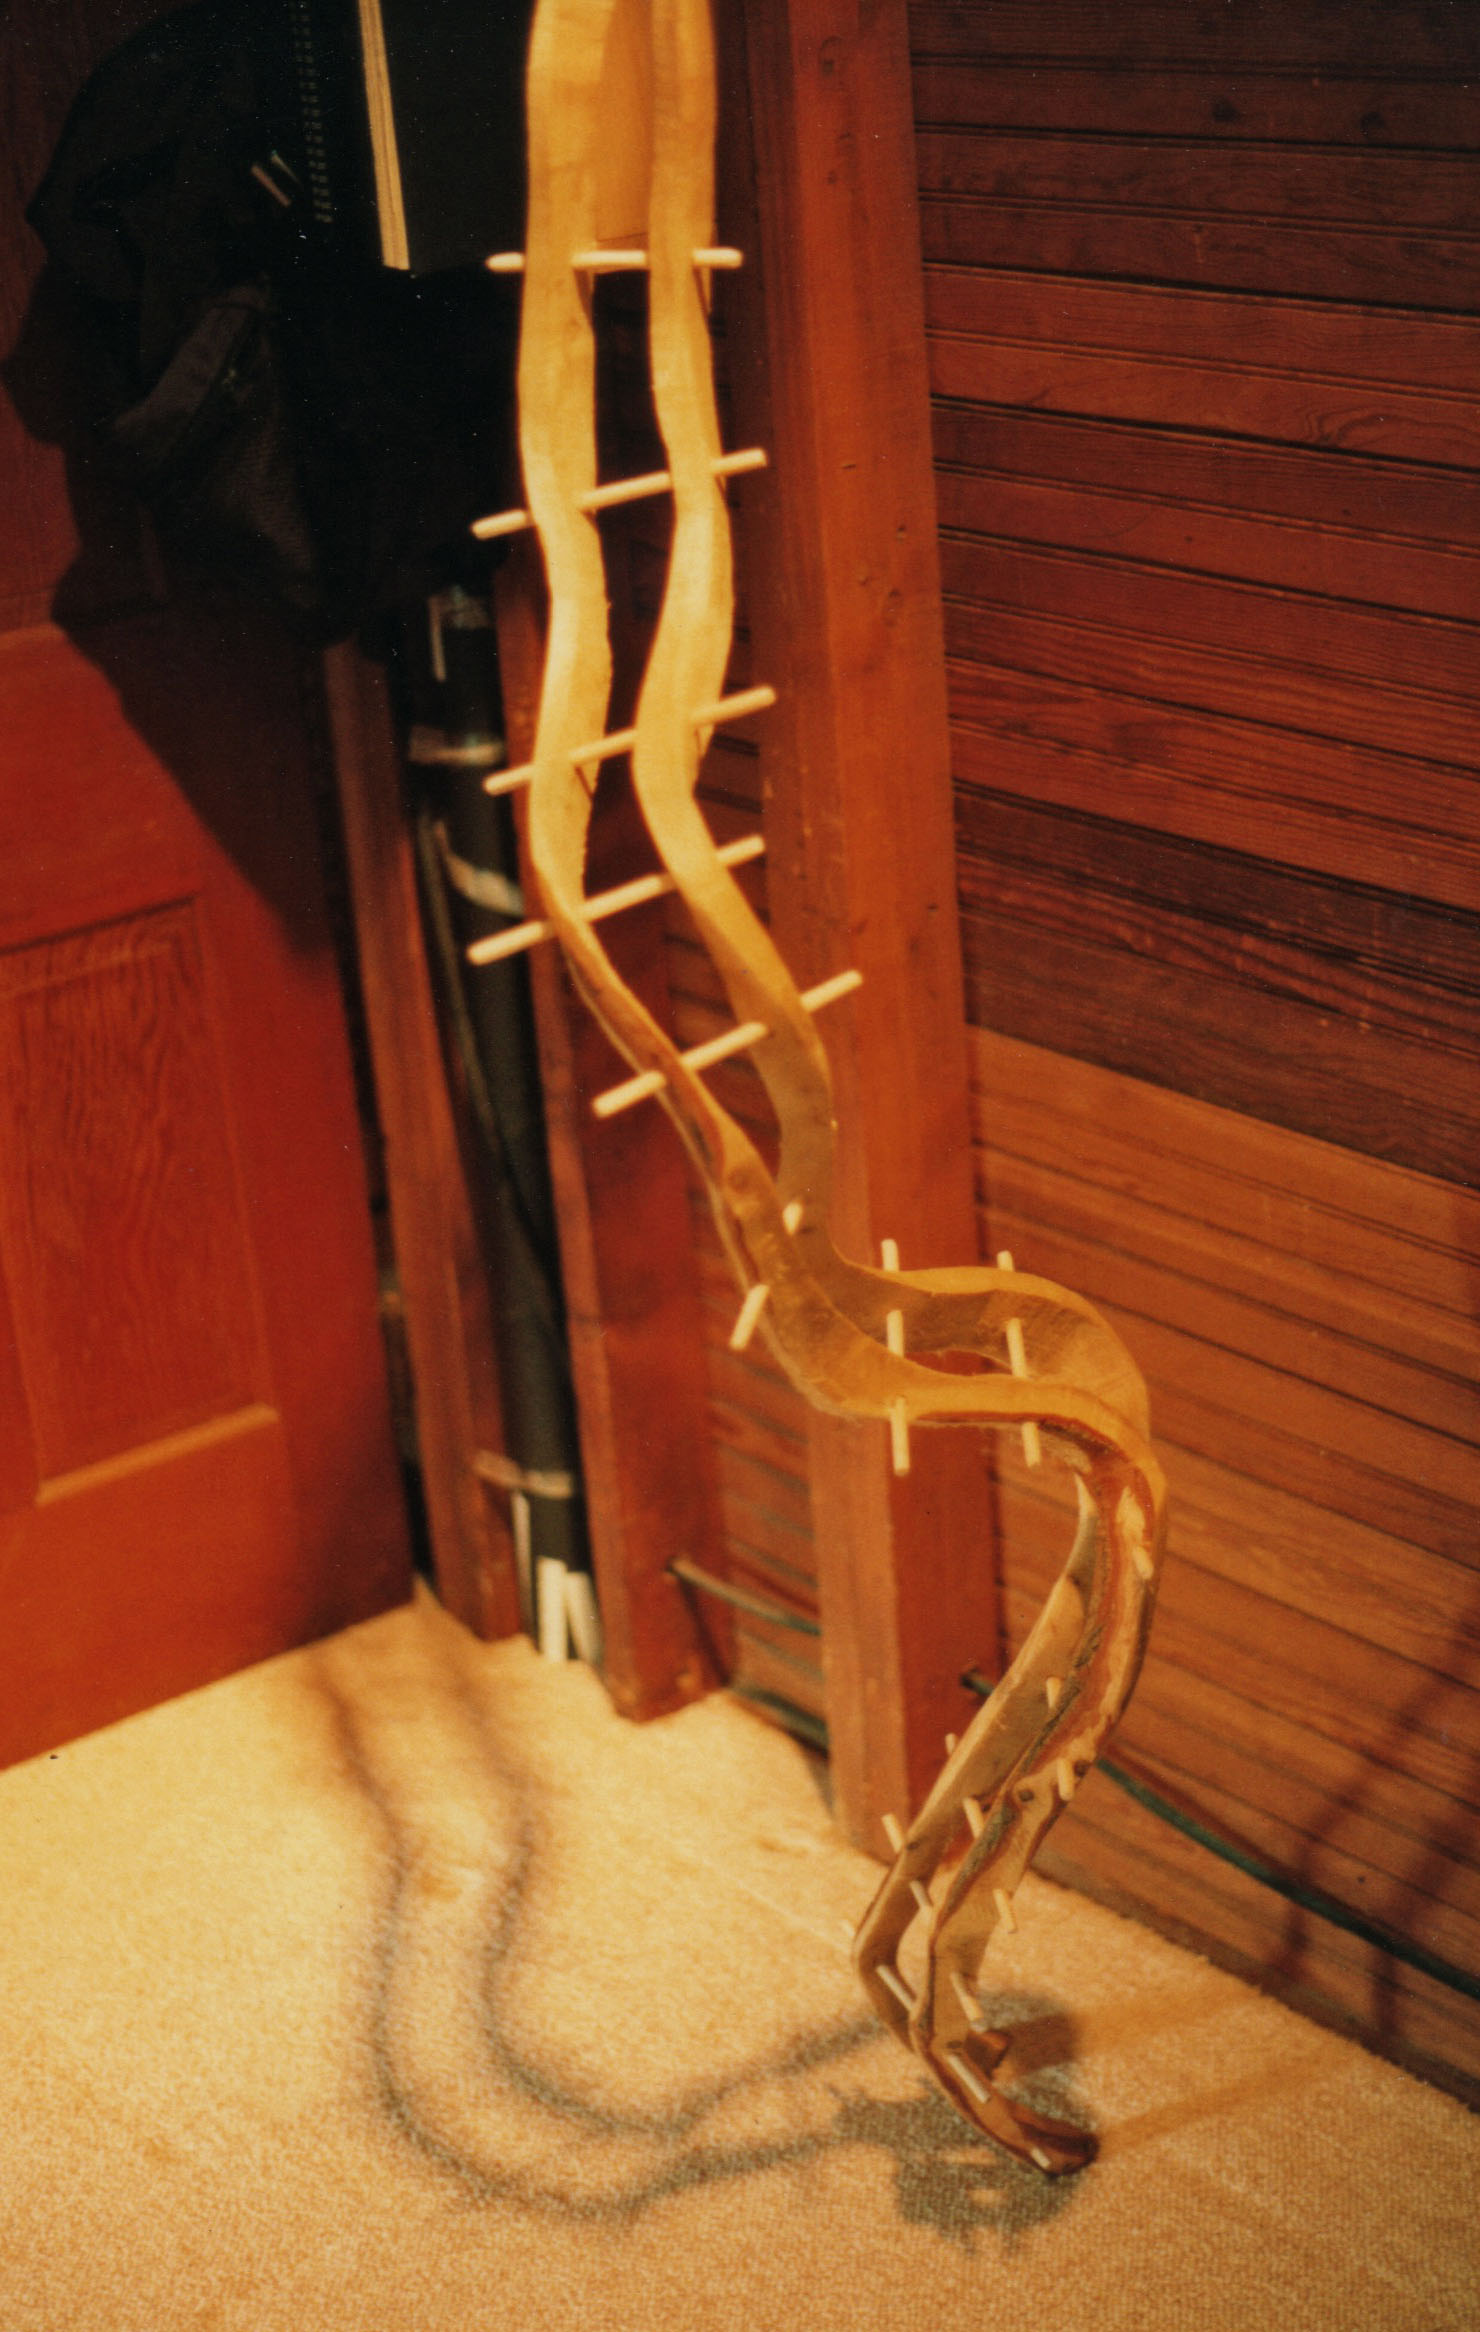 jacobs_ladder_1_detail.jpg